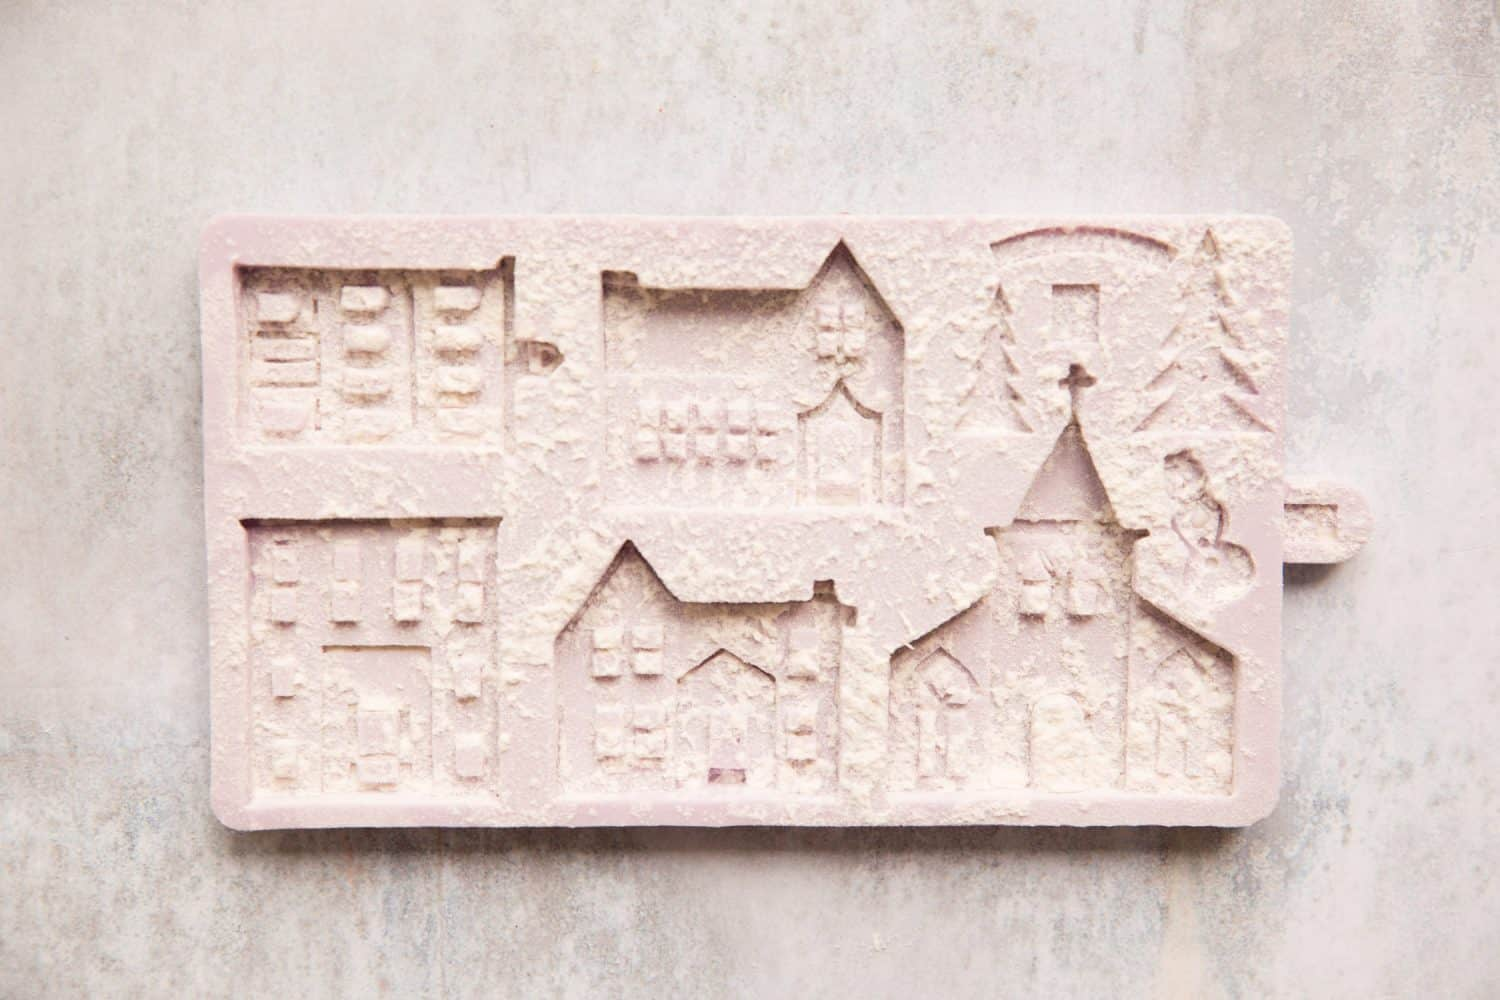 A gingerbread house mould that has been dusted with flour.